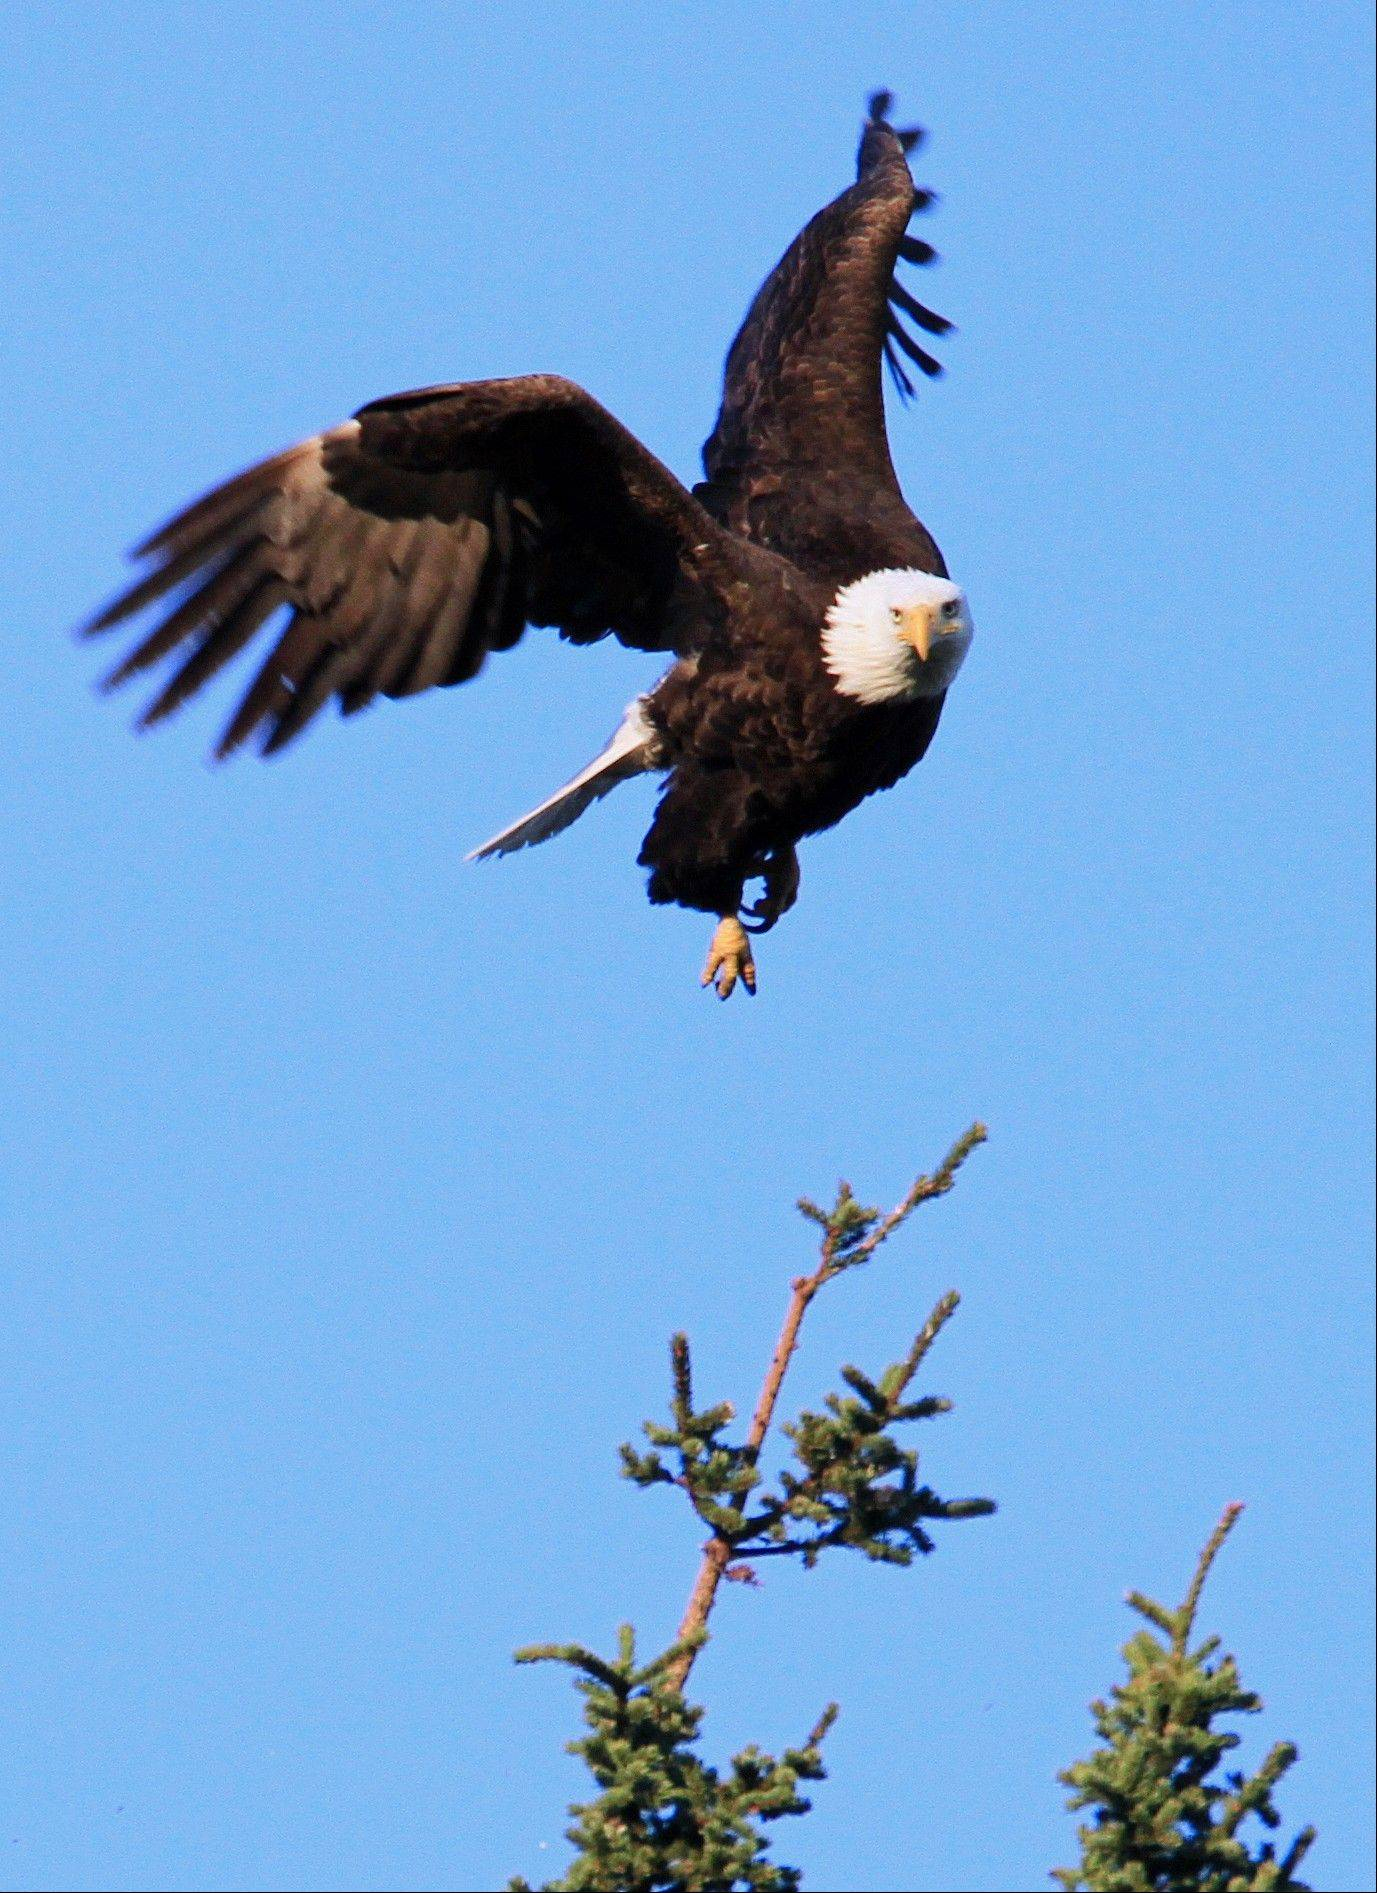 A bald eagle flaps its wings to lift off from a spruce tree last week near Sand Lake in Anchorage, Alaska.